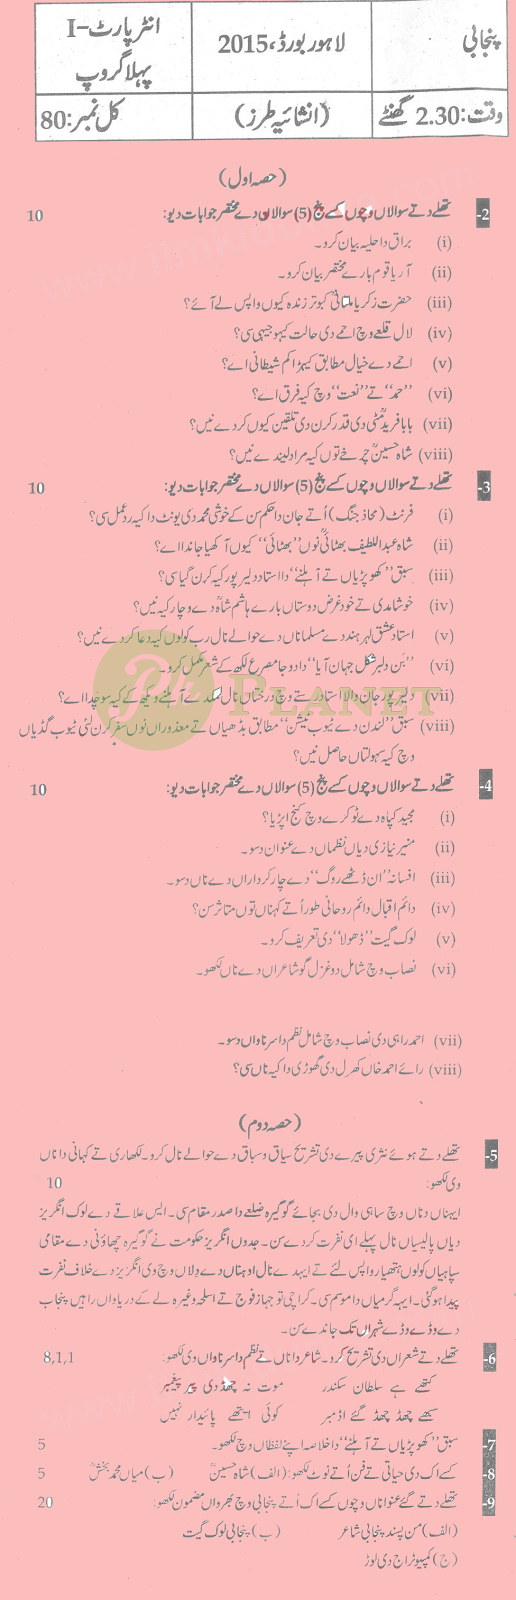 Past Papers of Punjabi Inter part 1 Lahore Board 2015